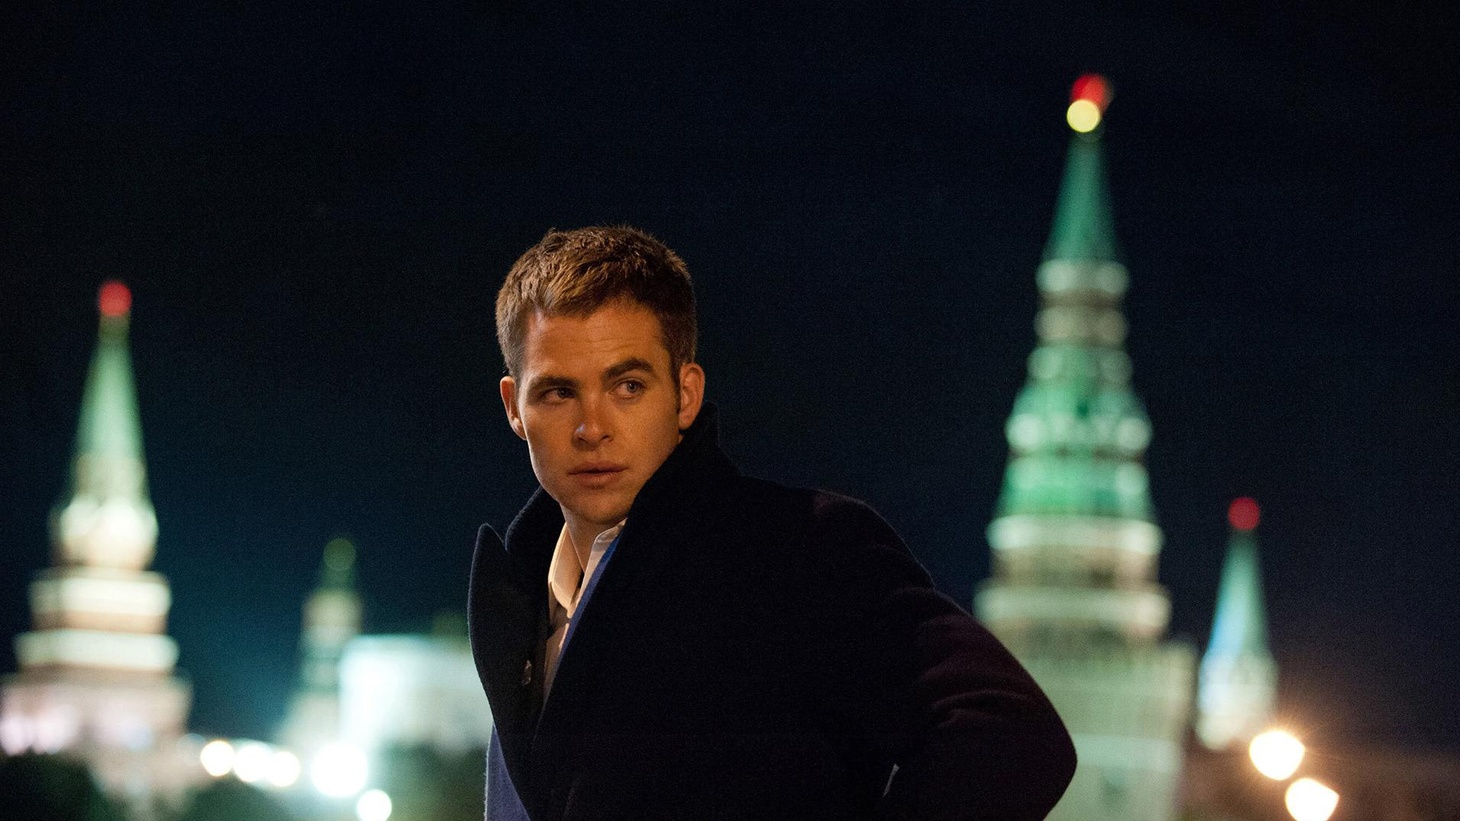 Jack Ryan: Shadow Recruit is loosely based on the Tom Clancy canon...